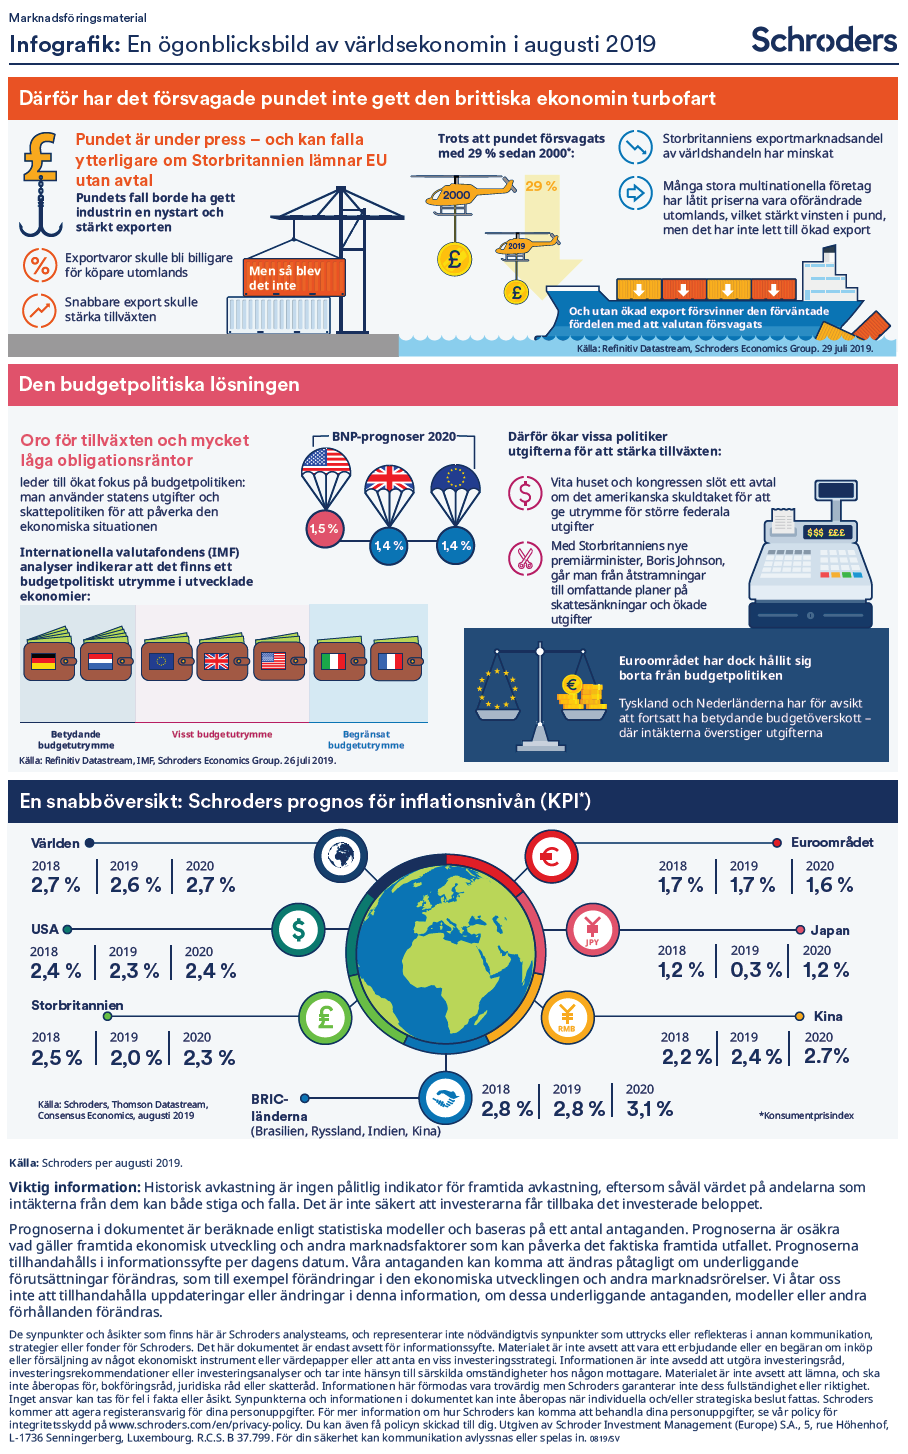 Schroders-Economic-Infographic-2019_09_full.png